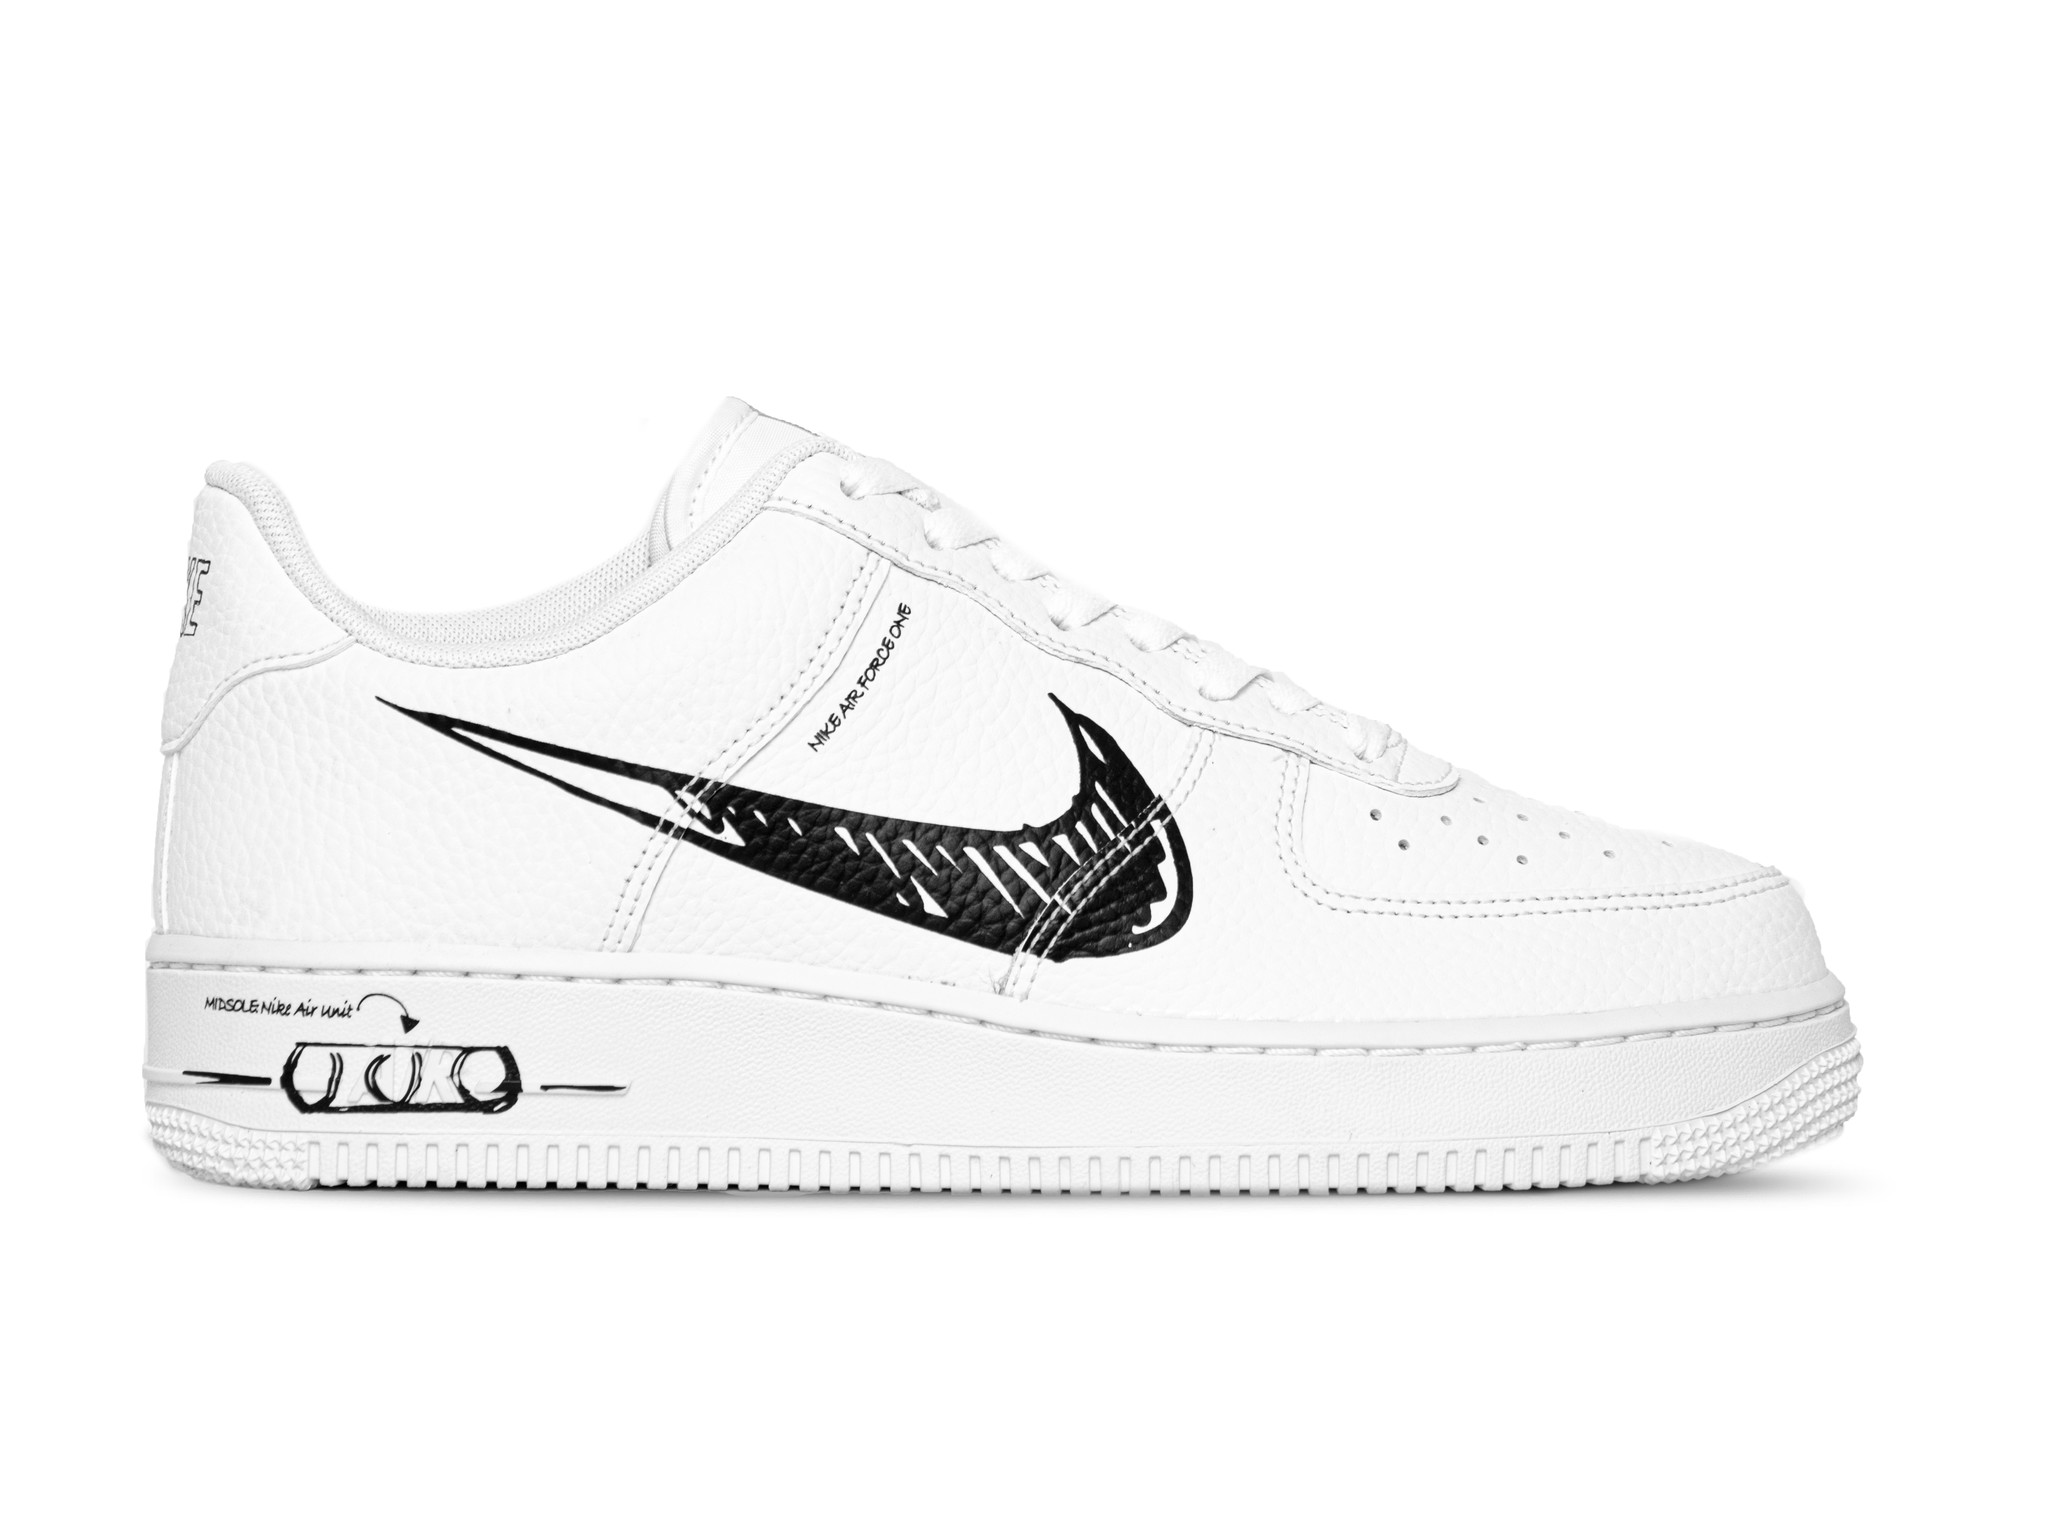 Nike Air Force 1 LV8 Utility White Black White CW7581 101 | Bruut